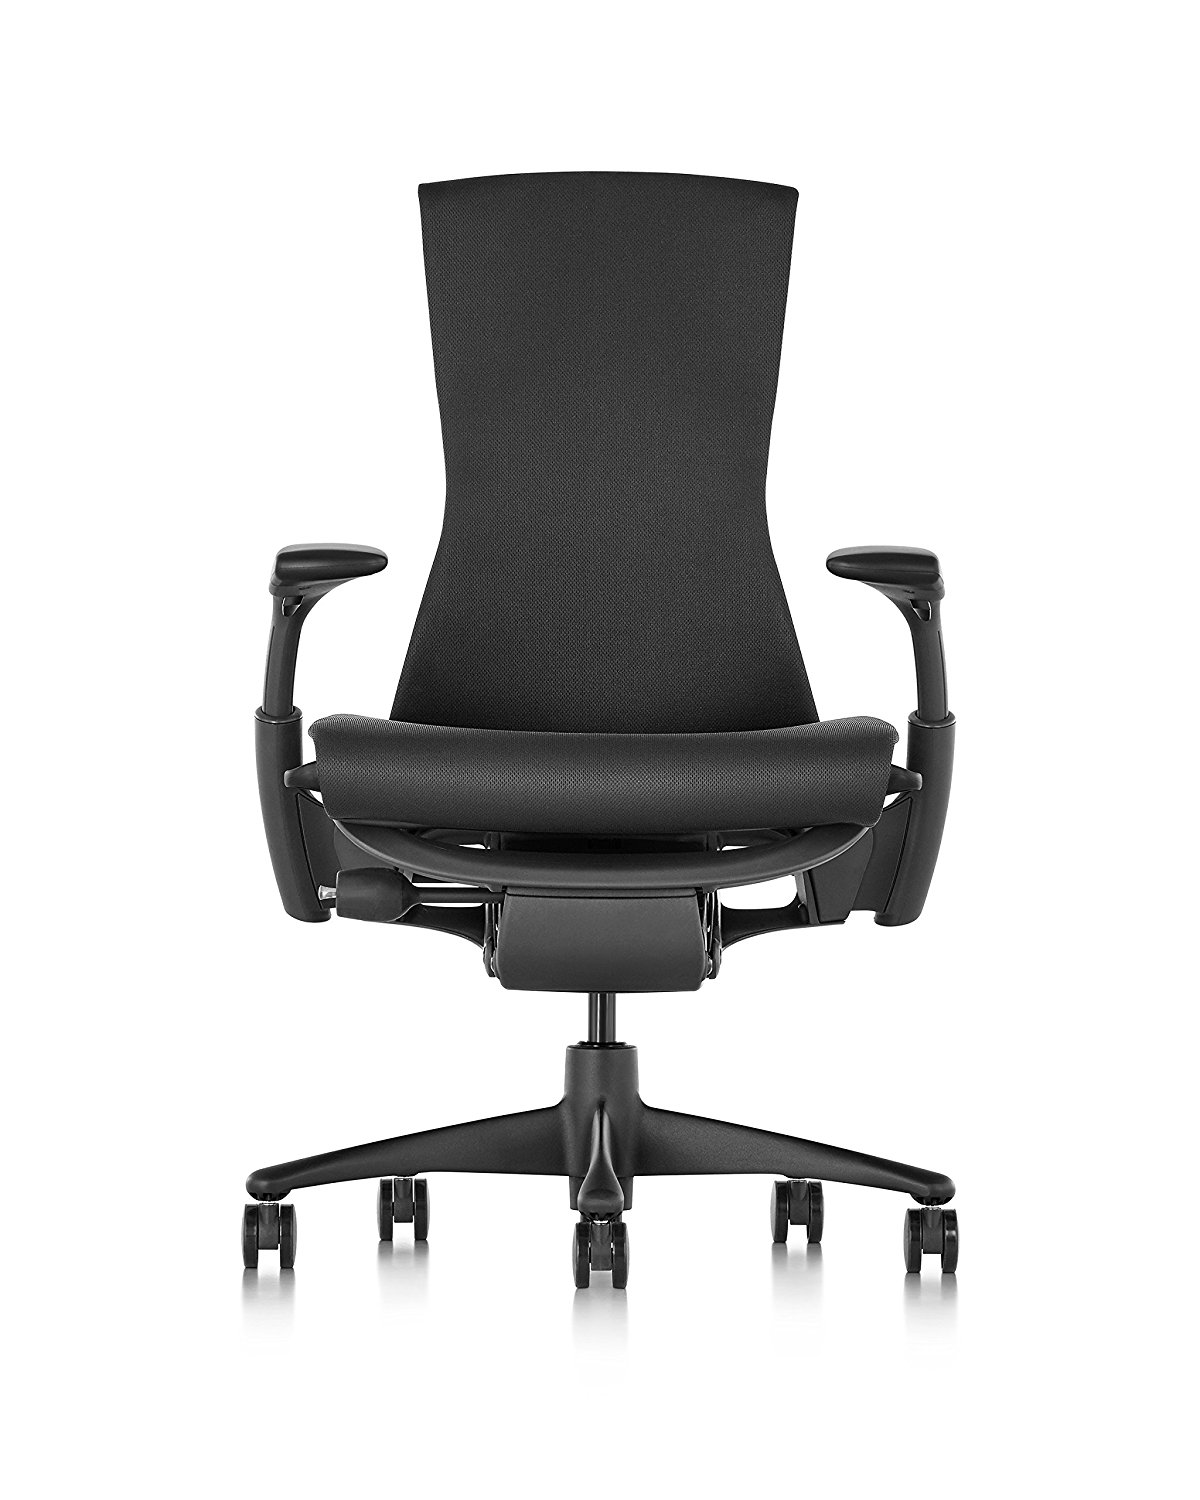 Best Gaming Chairs with Lumbar Support - ReviewNetwork.com